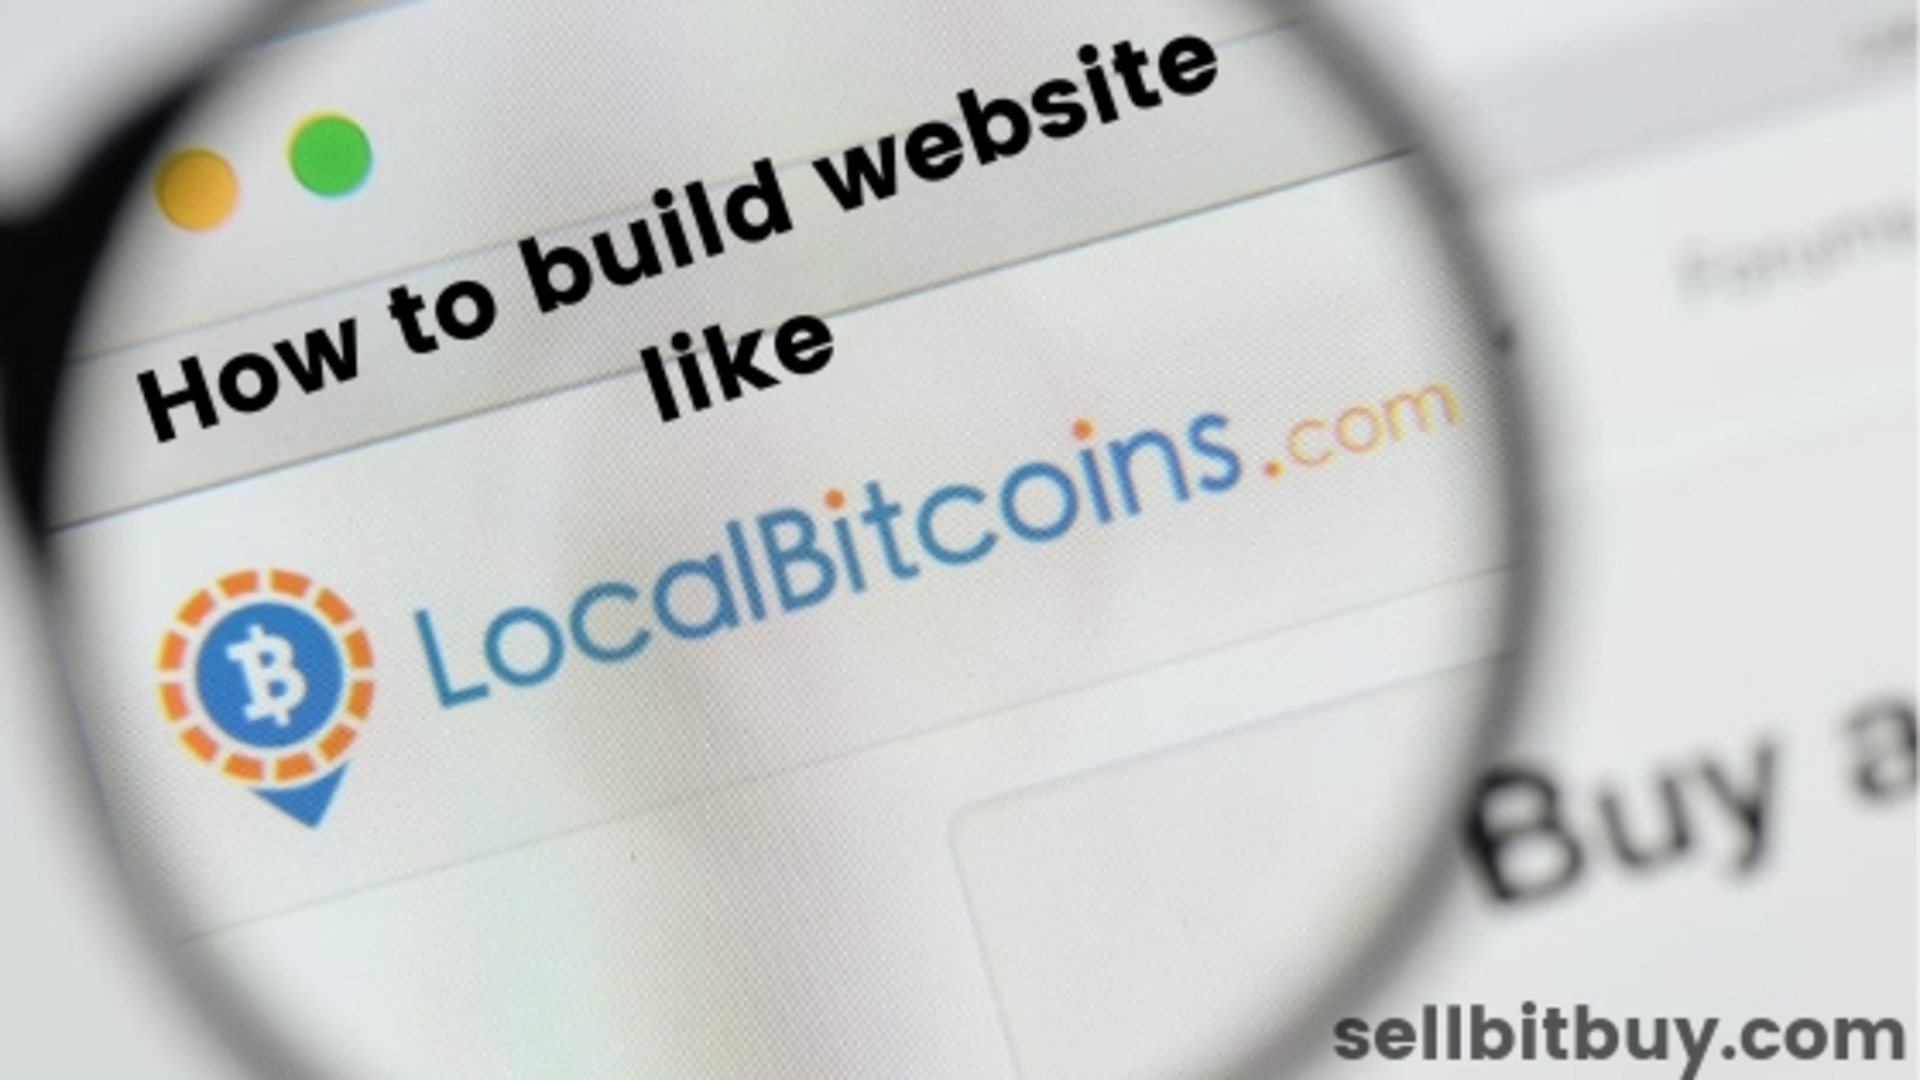 How to build your bitcoin exchange site like localbitcoins? image